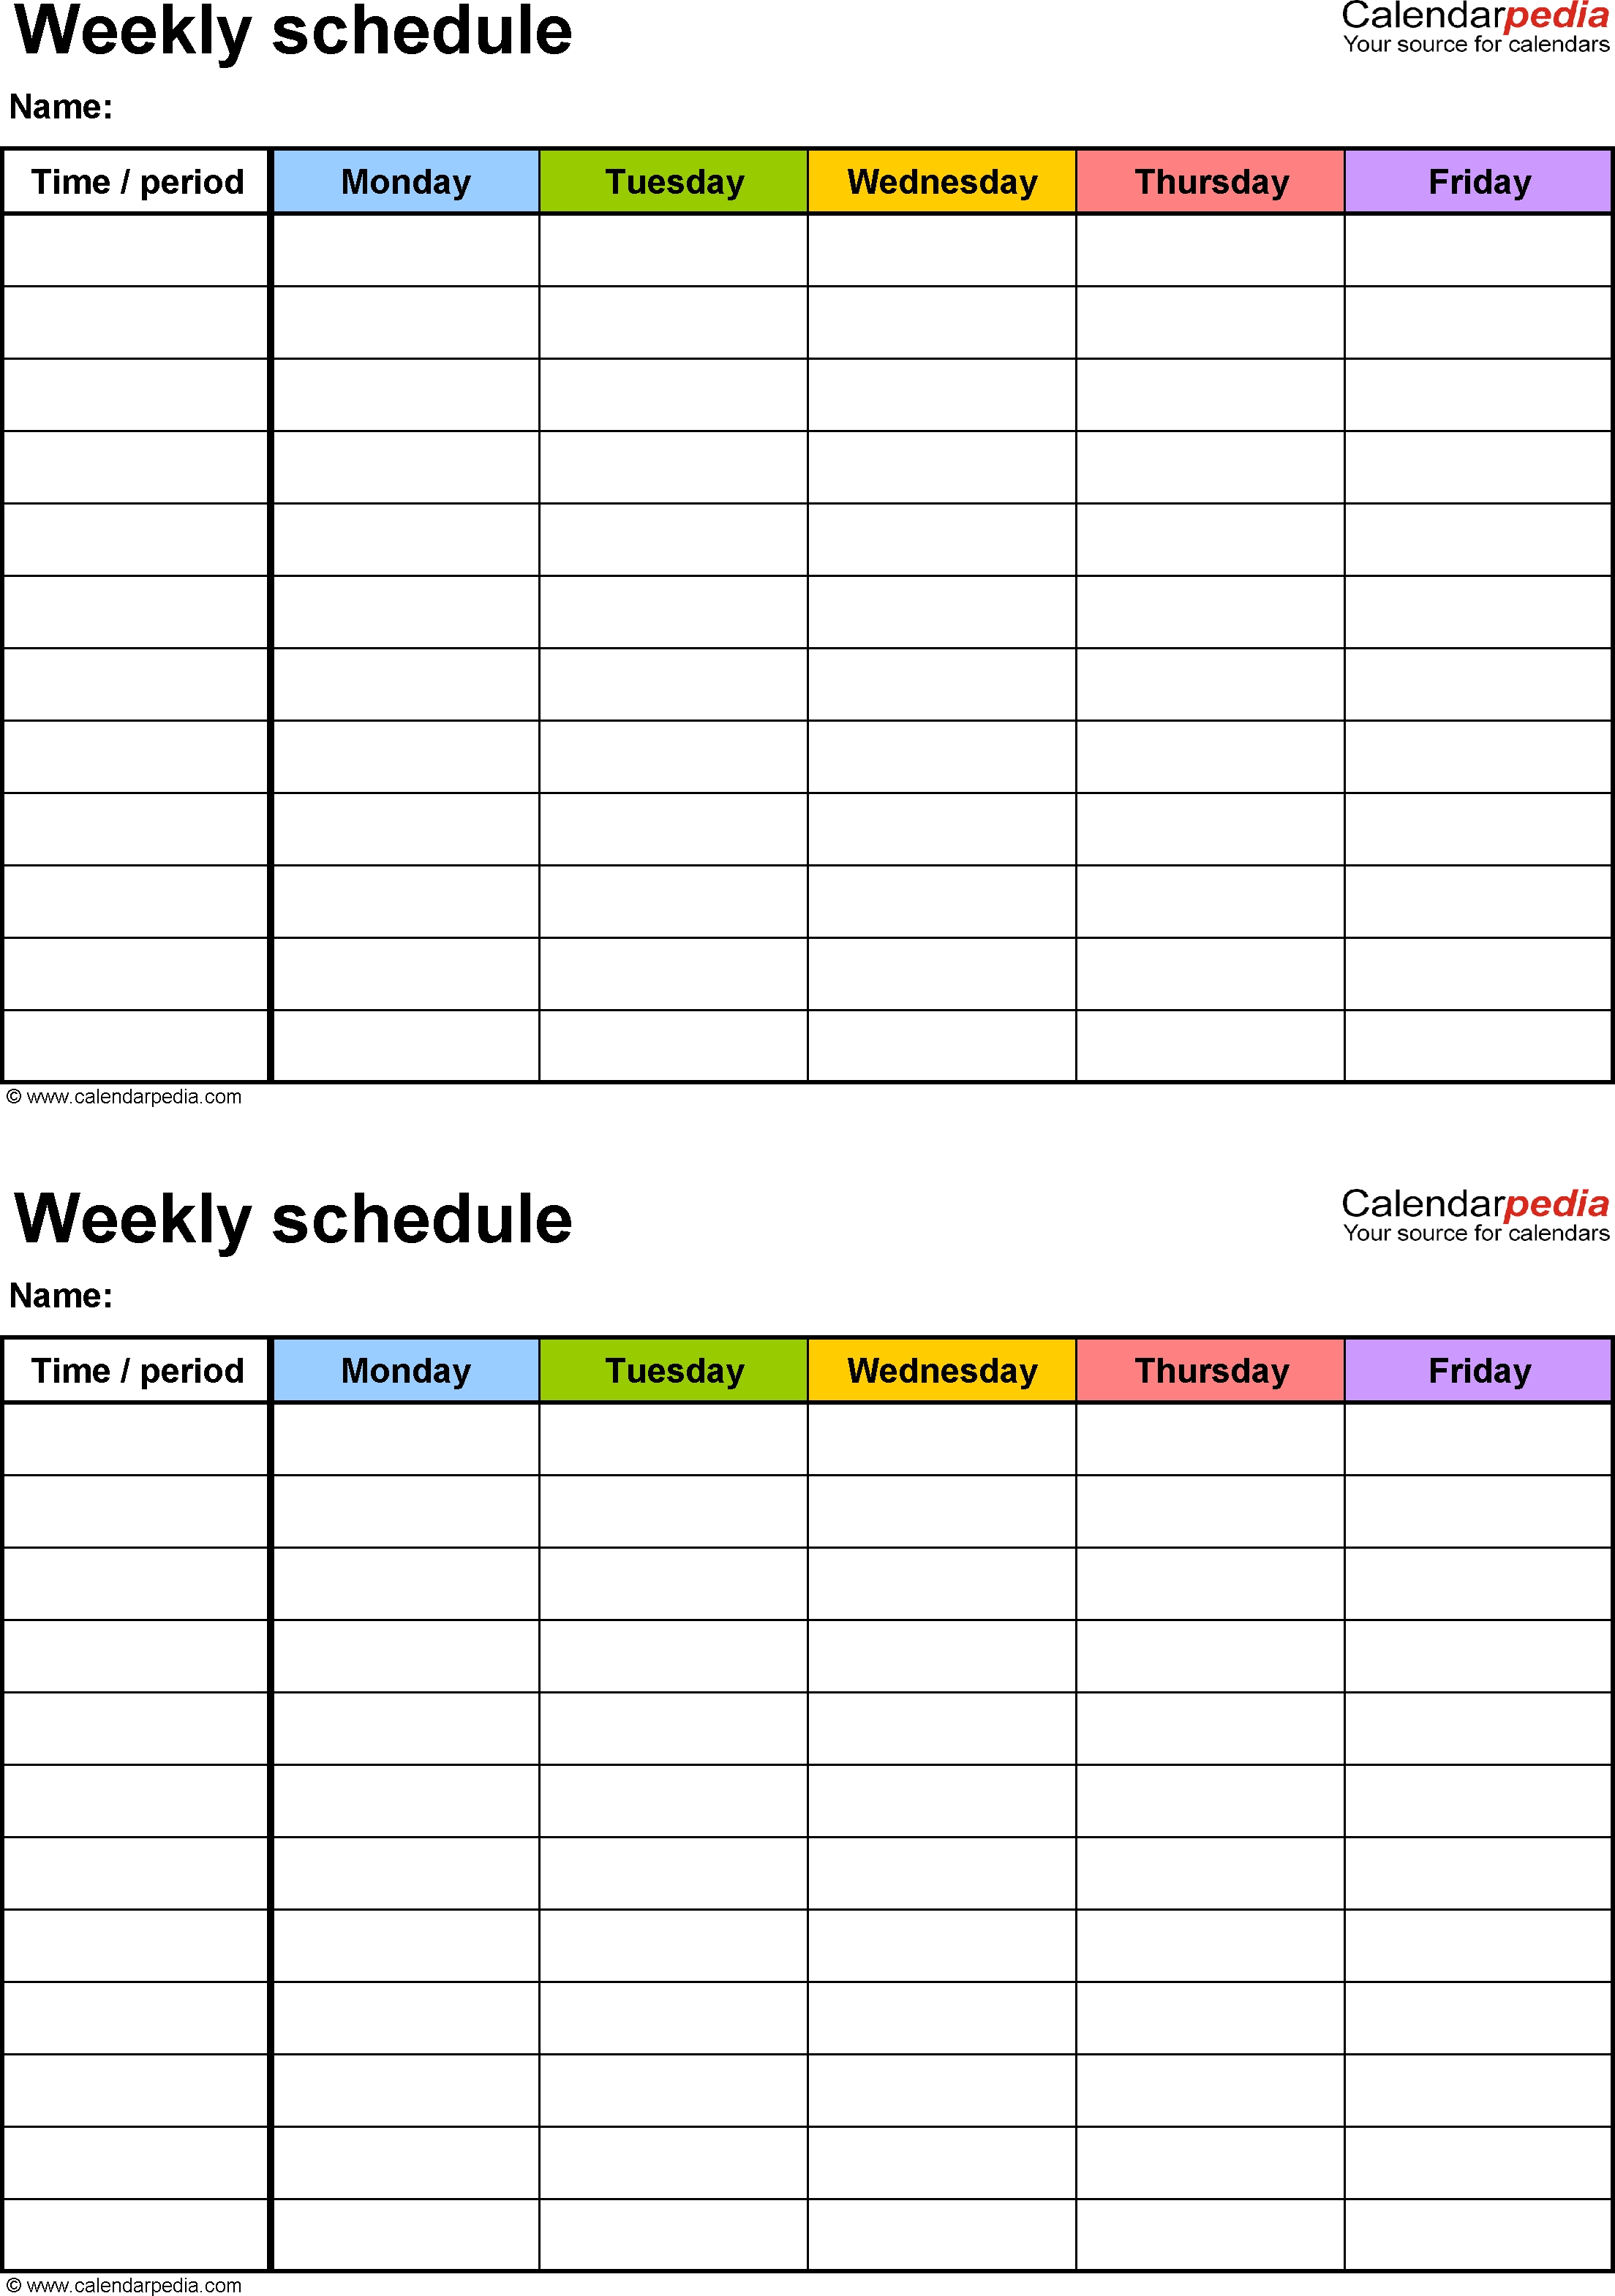 Free Weekly Schedule Templates For Word - 18 Templates for 7 Day 12 Week Planner Blank